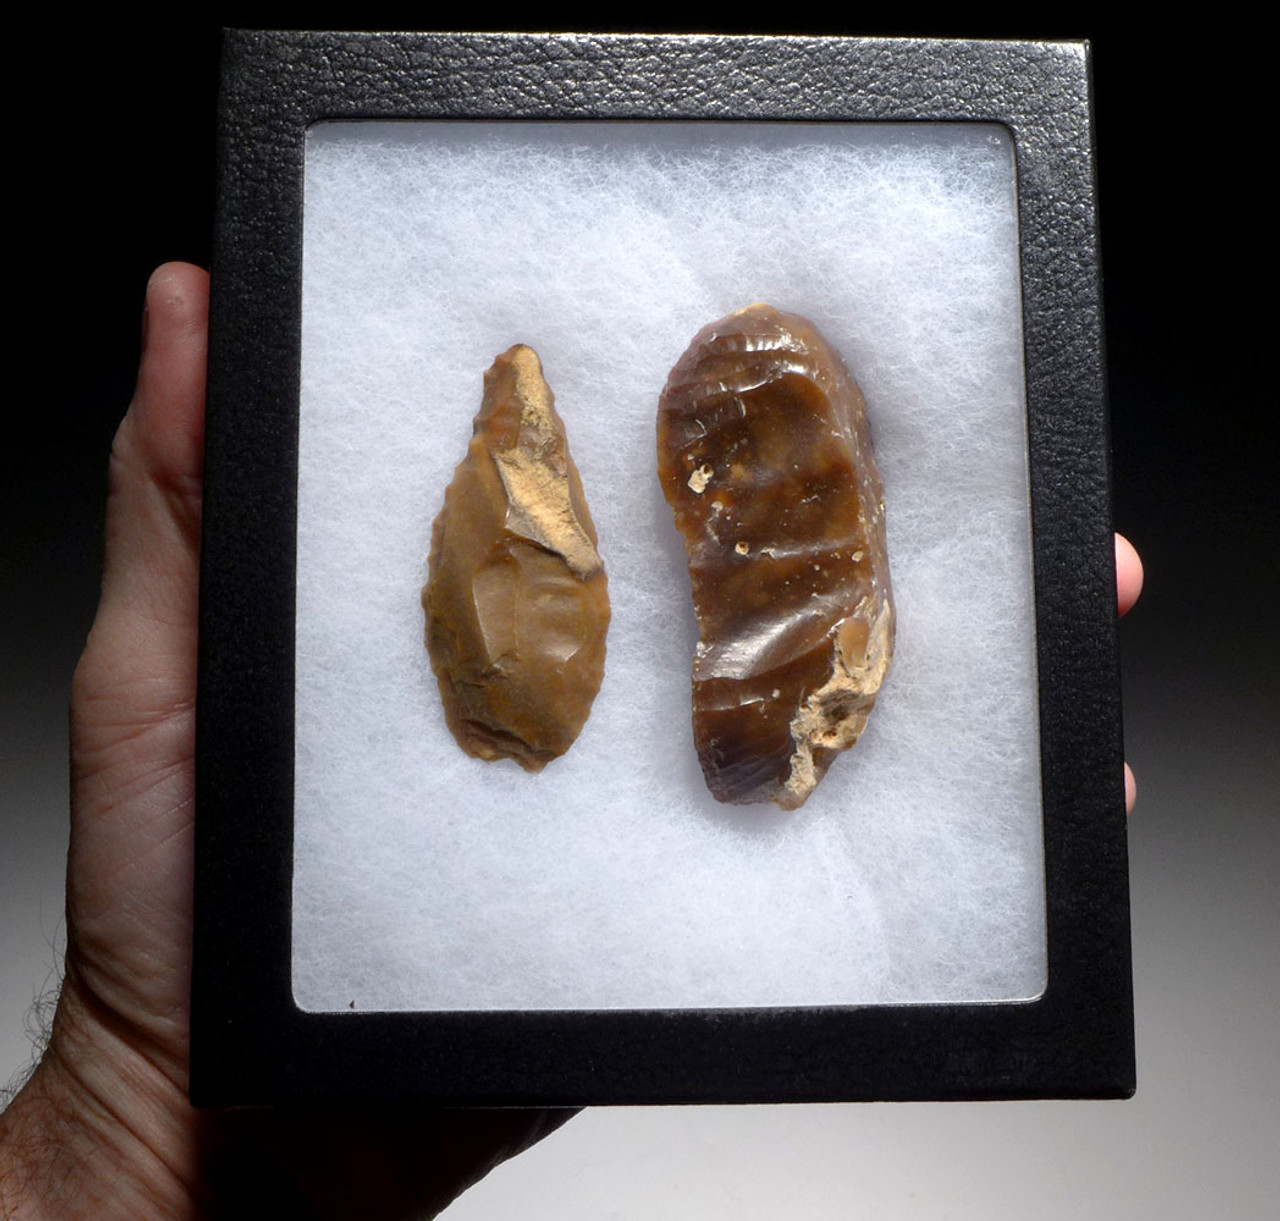 TWO FLINT KNIVES FROM THE AFRICAN CAPSIAN NEOLITHIC *CAP220